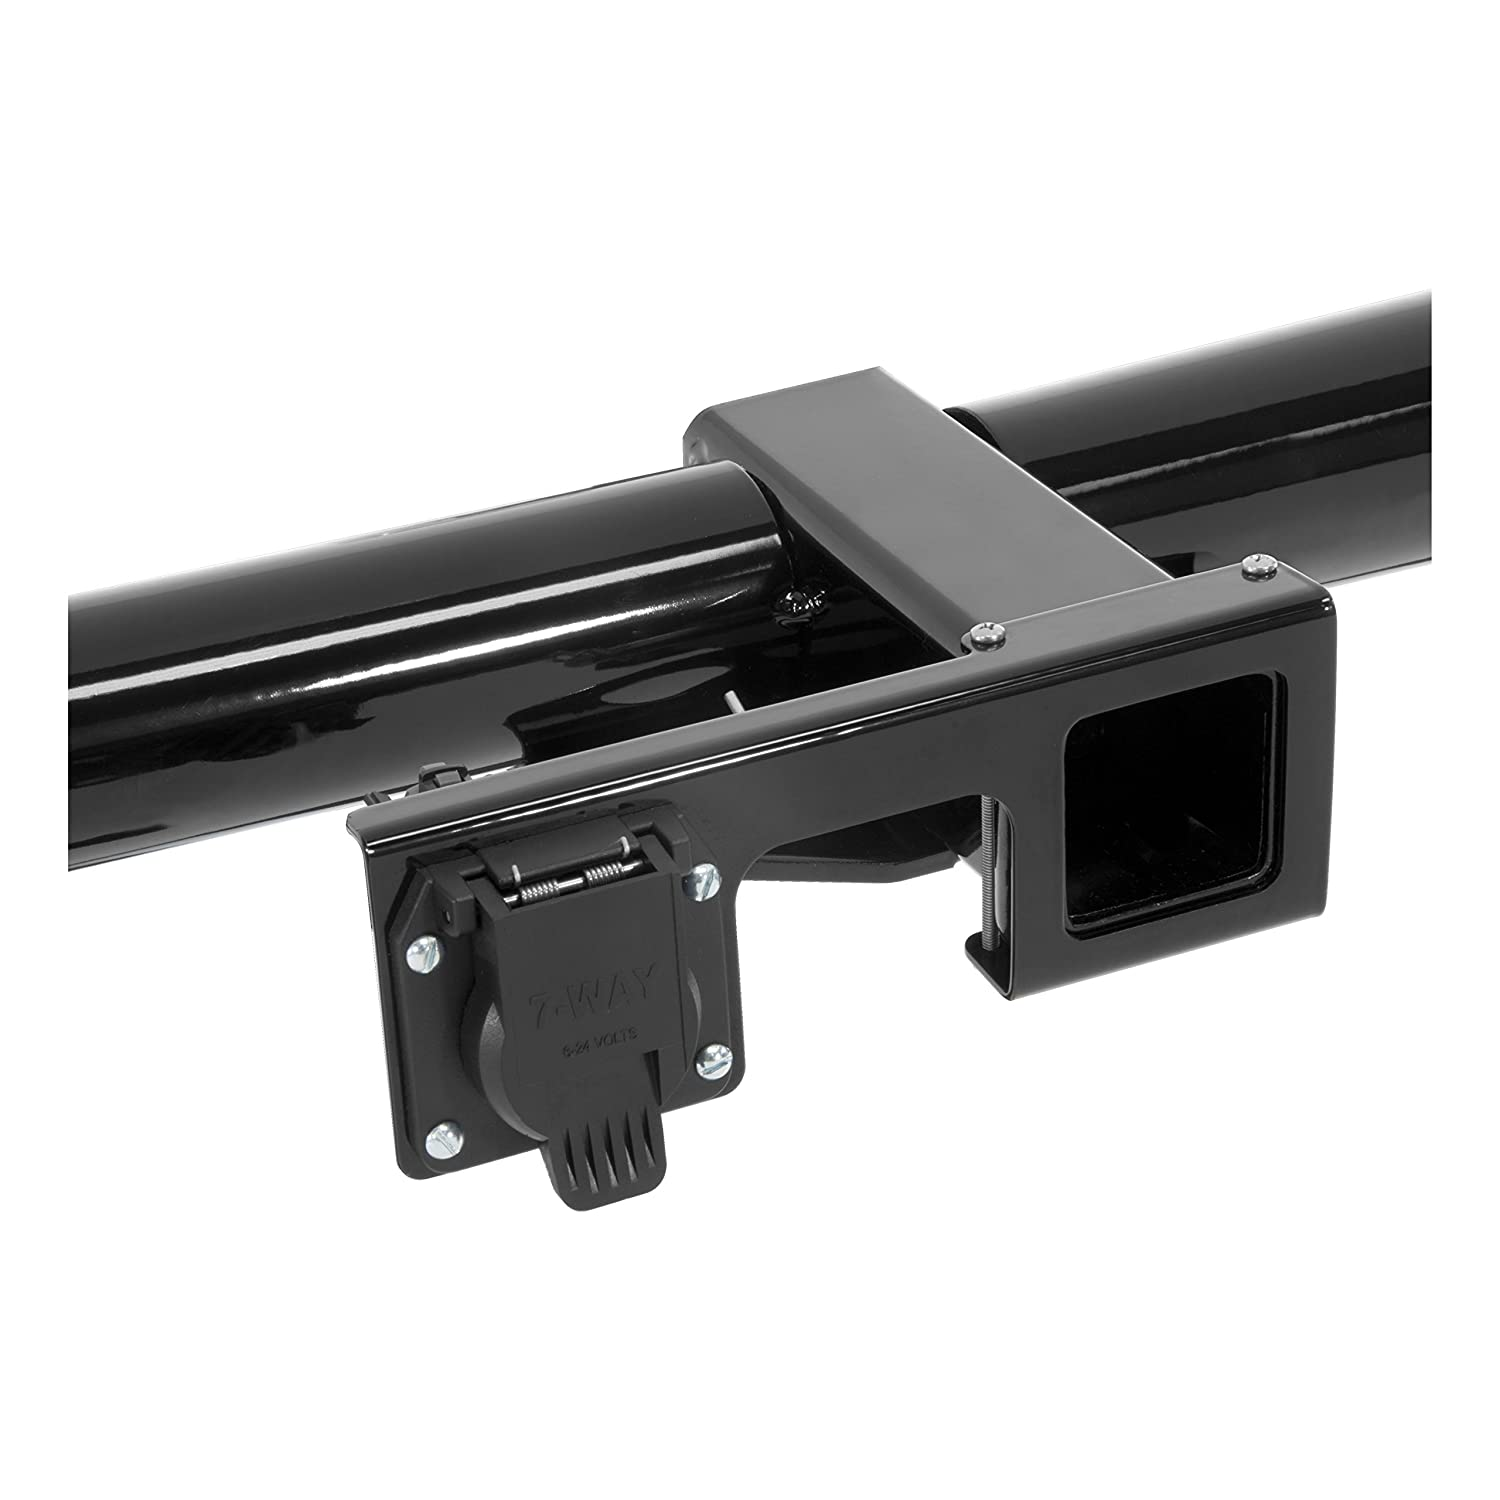 Amazon.com: CURT 58000 Easy-Mount Electrical Bracket: Automotive